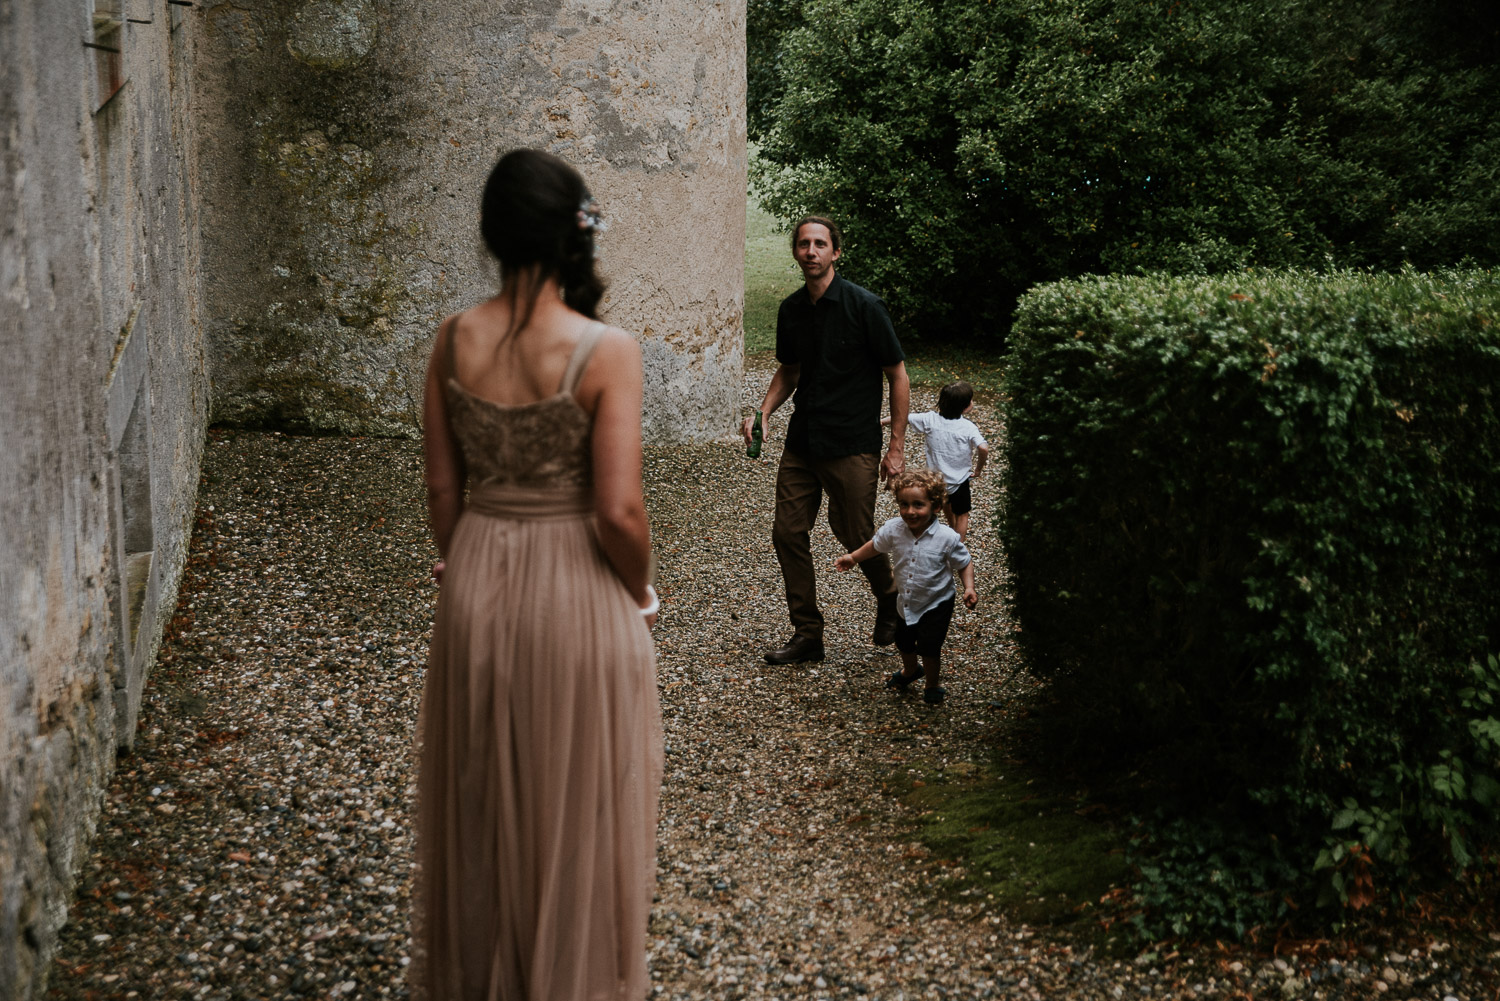 chateau_la_commanderie_mirepoix__wedding_katy_webb_photography_france_UK108